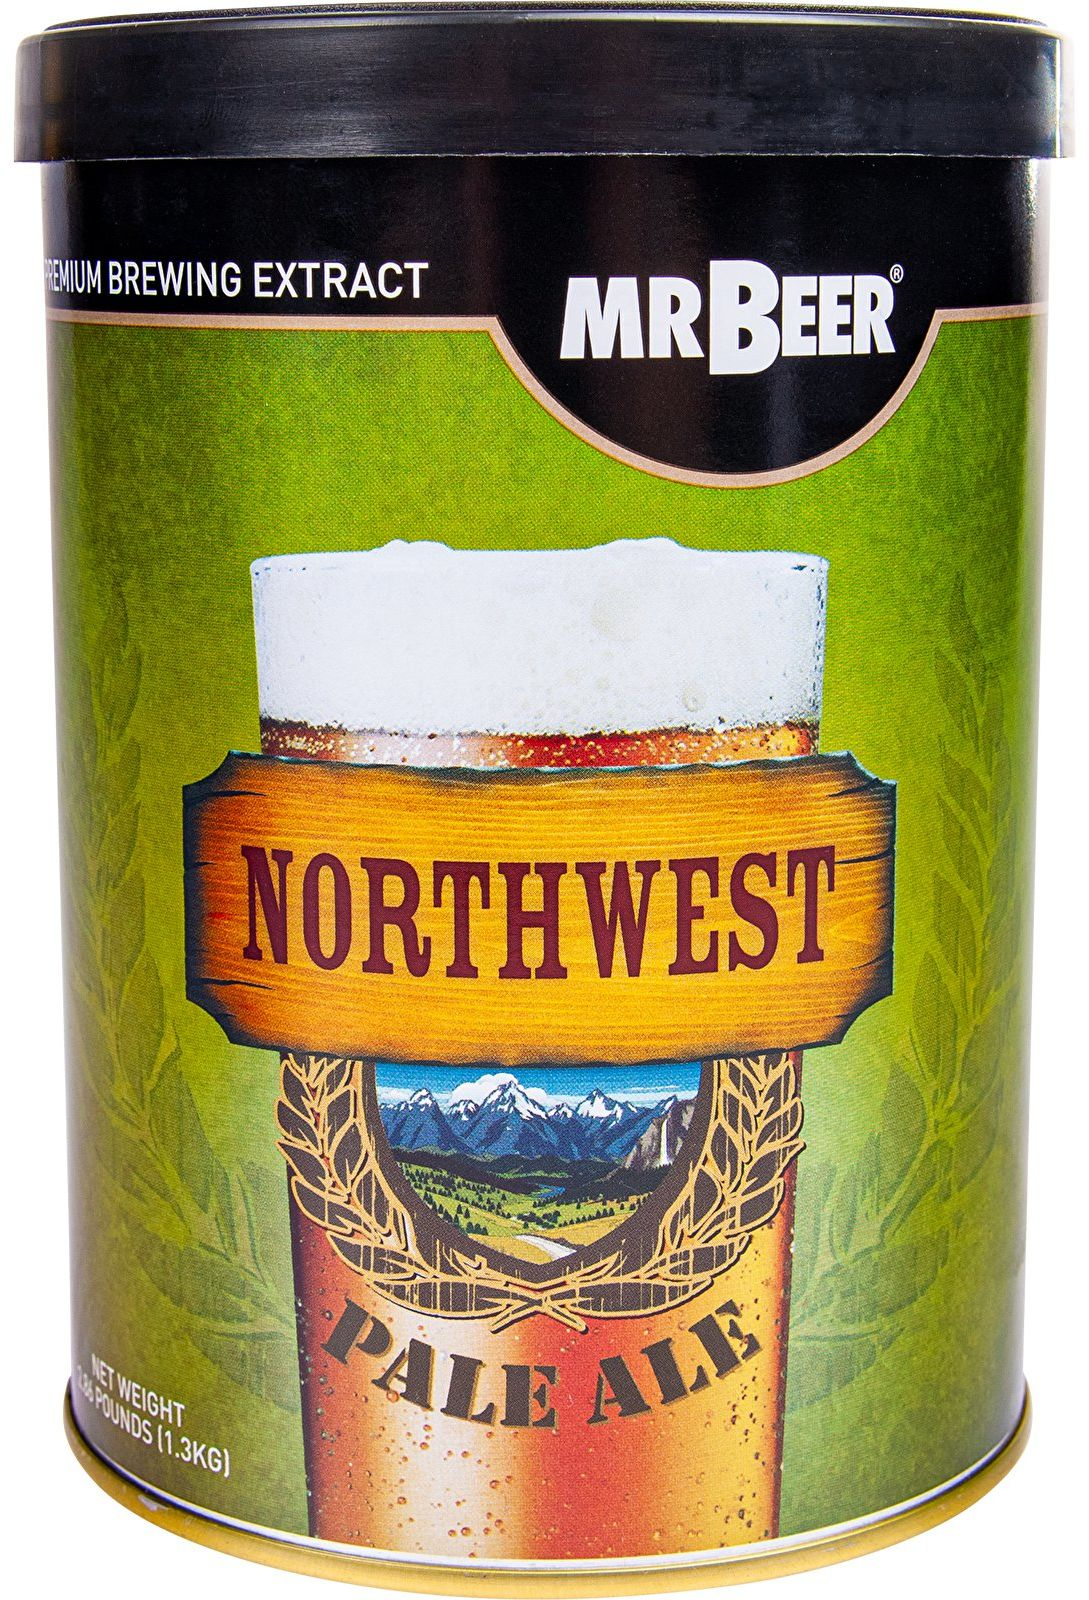 Brewkit Coopers Northwest Pale Ale